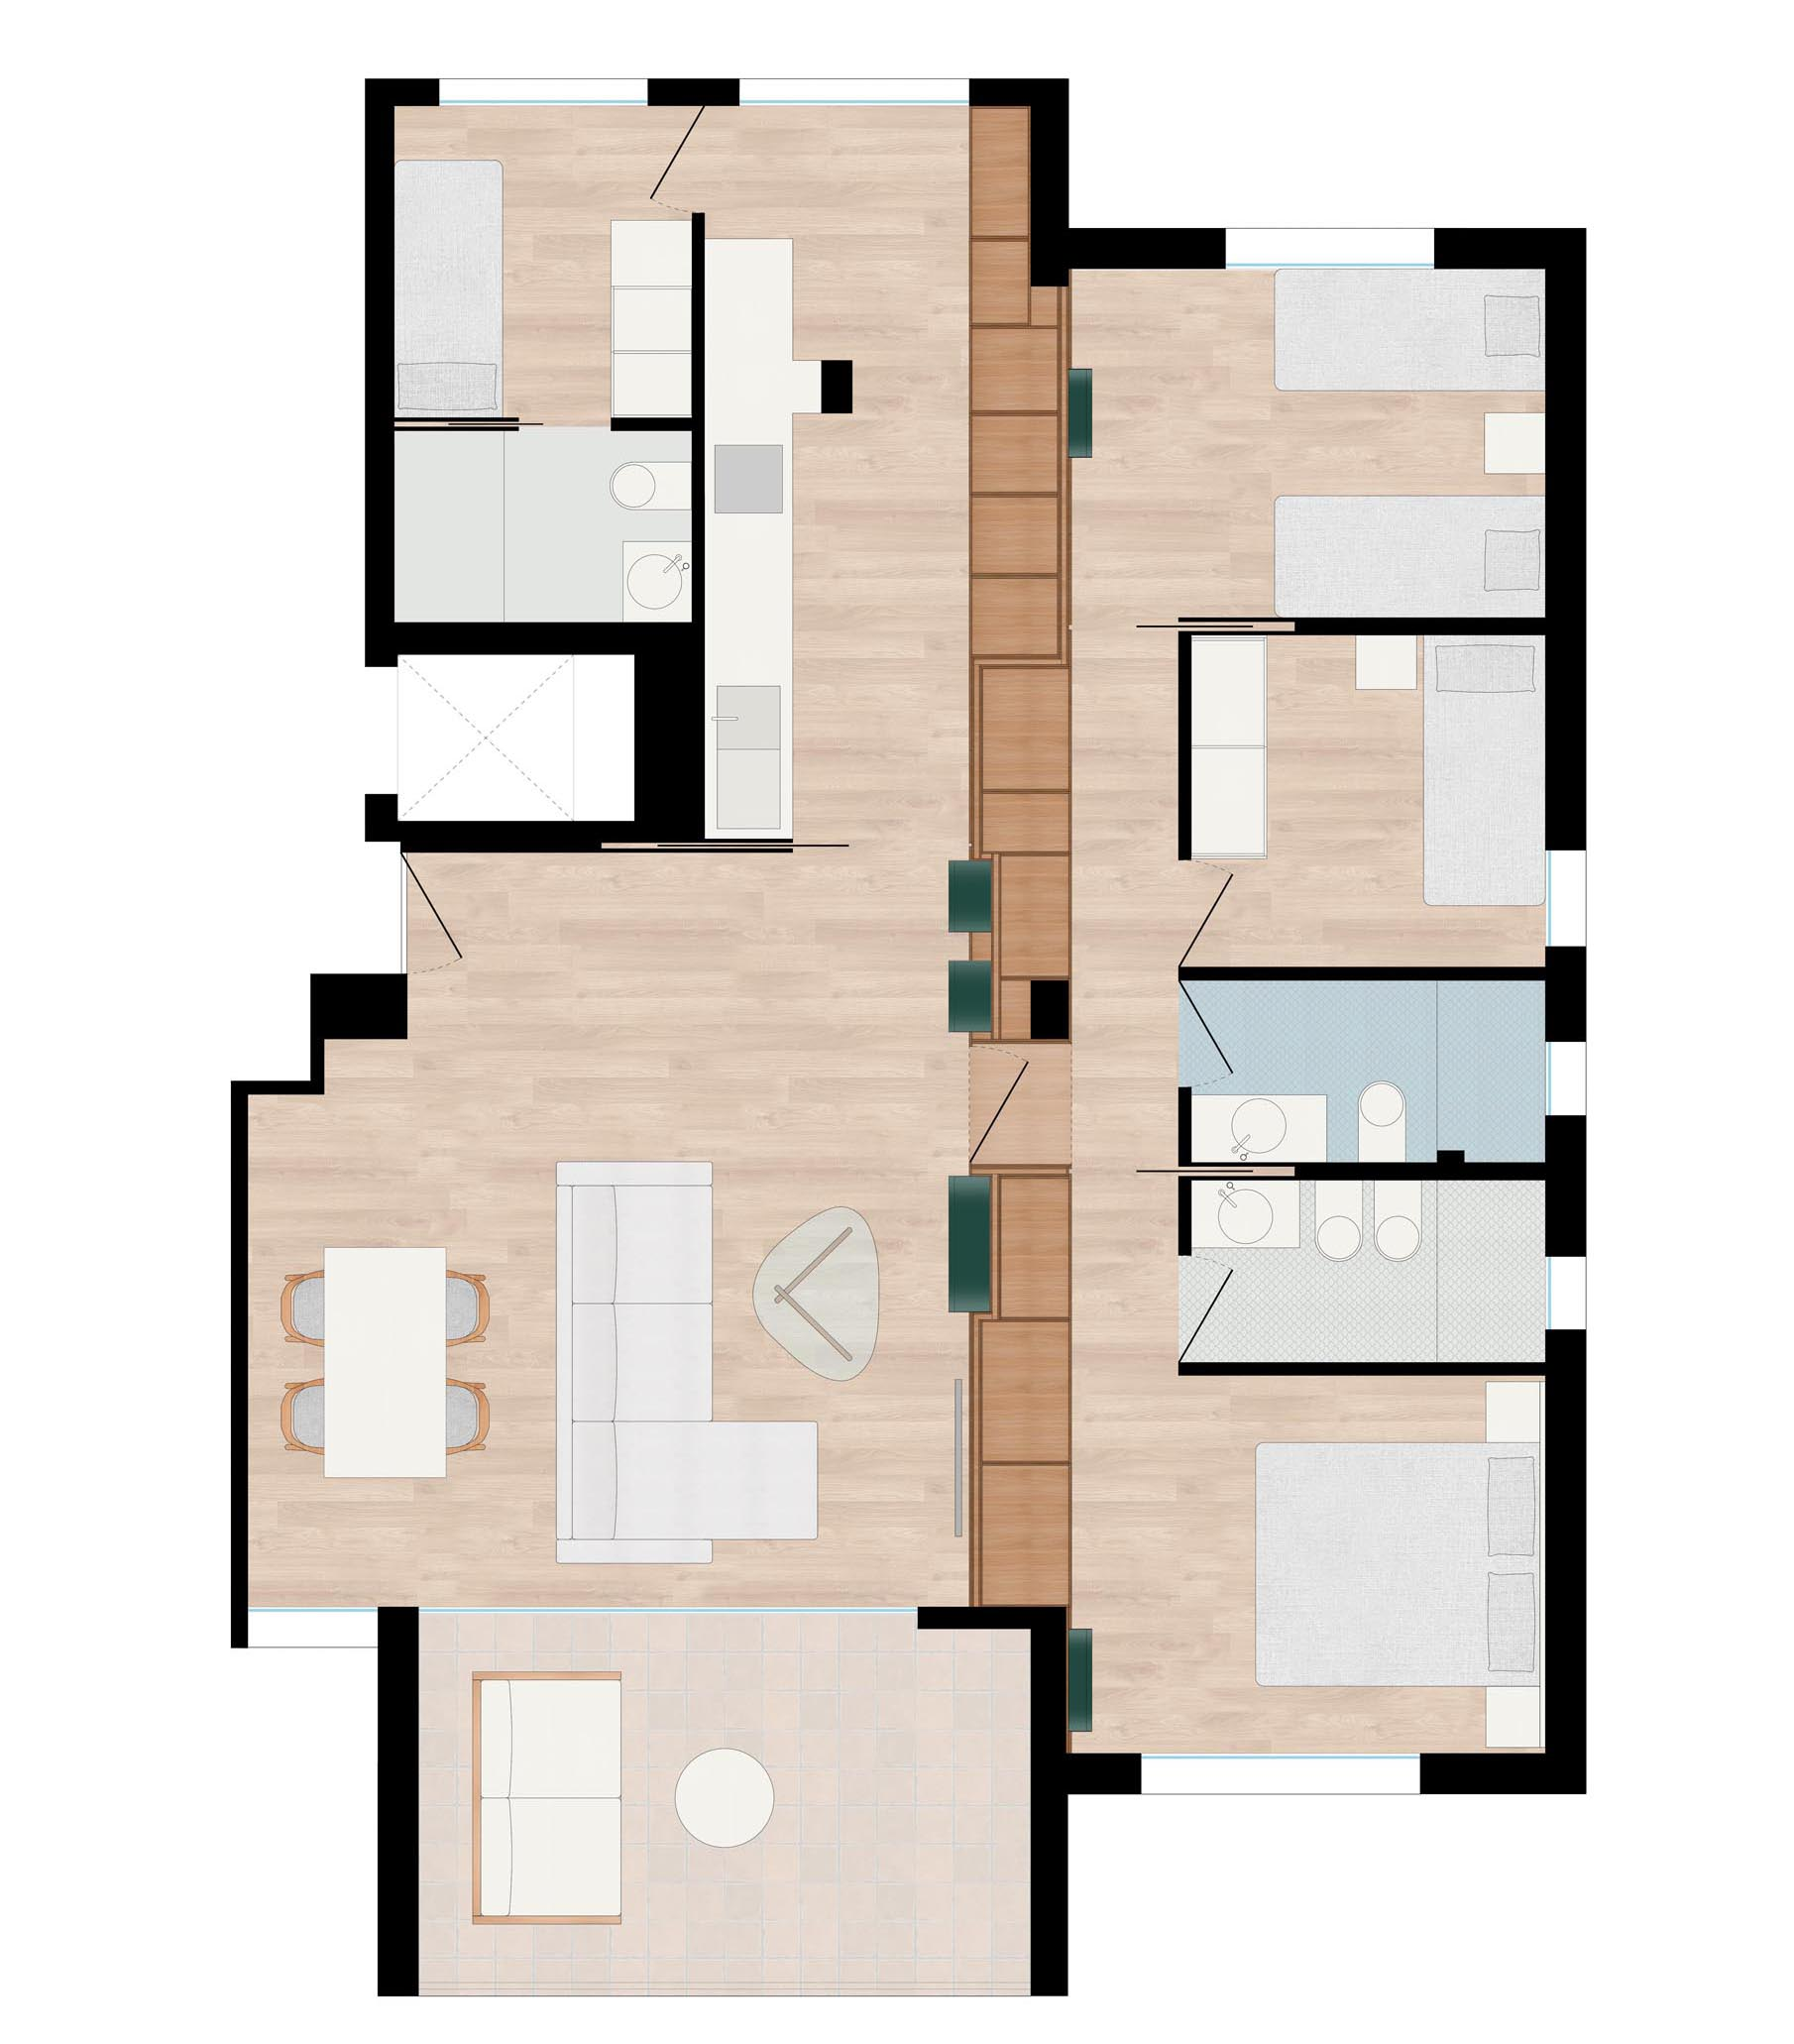 The floor plan of a modern apartment that has a wood storage wall.